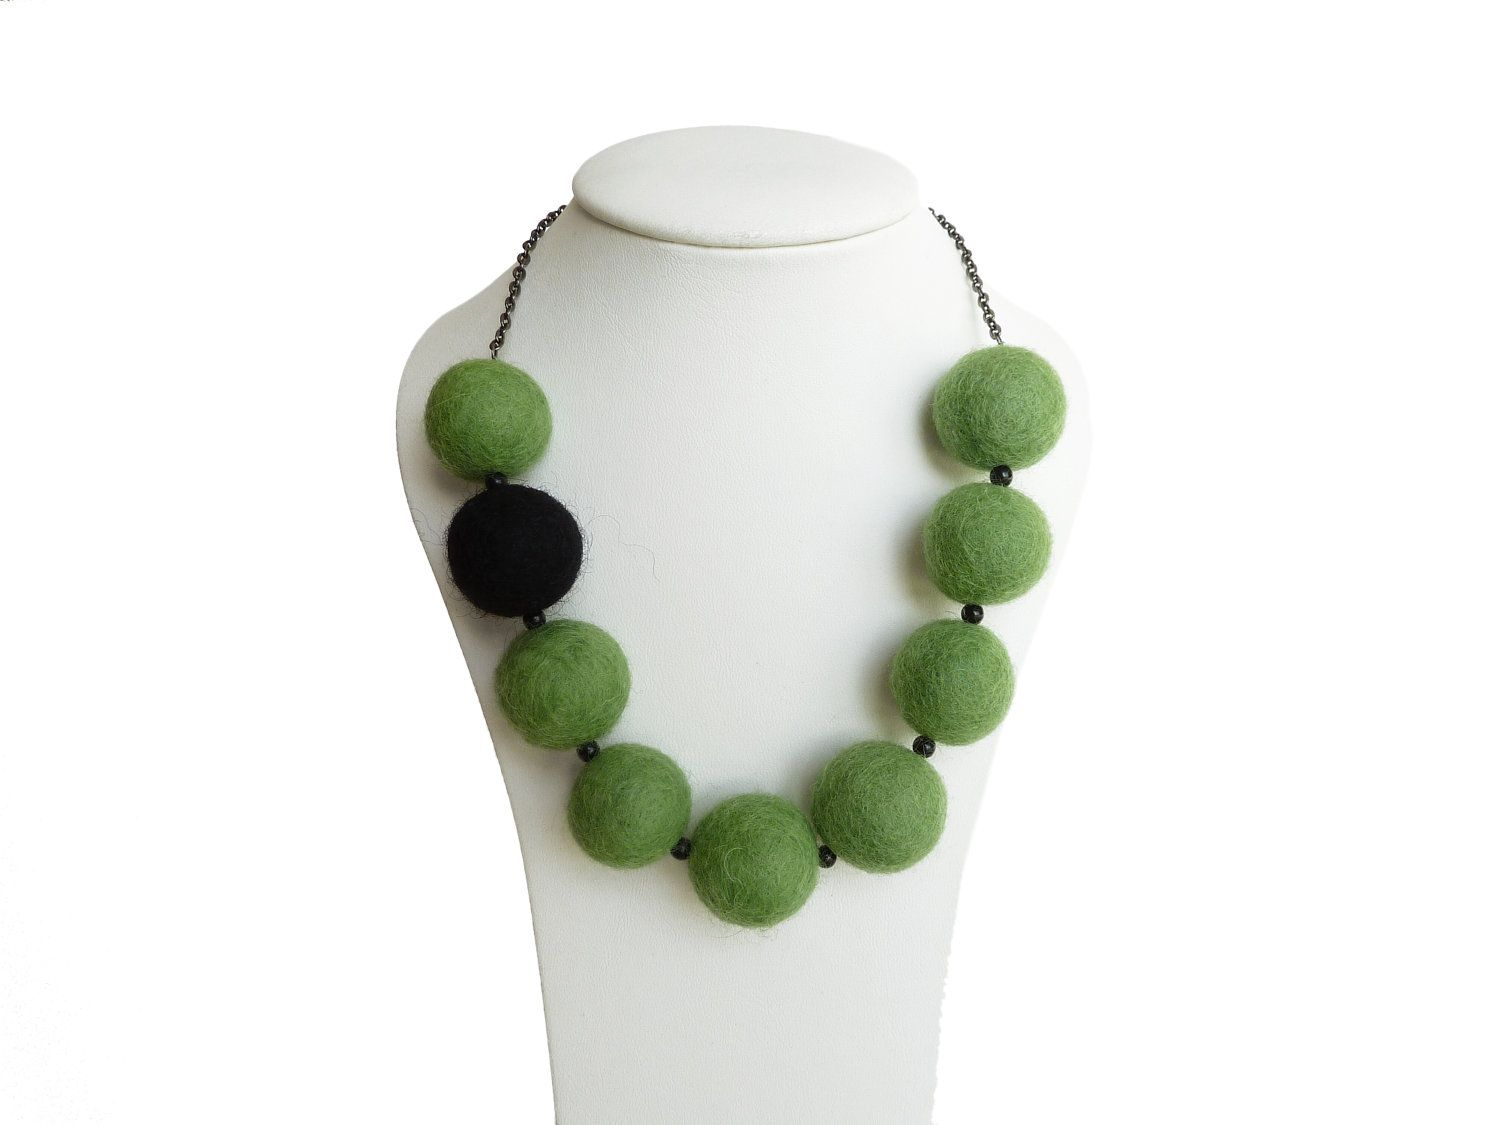 Lime Green Necklace - Olive Green Felt Necklace - Felt Bead Statement Necklace - Chunky Felted Ball Jewelry. £15.00, via Etsy.